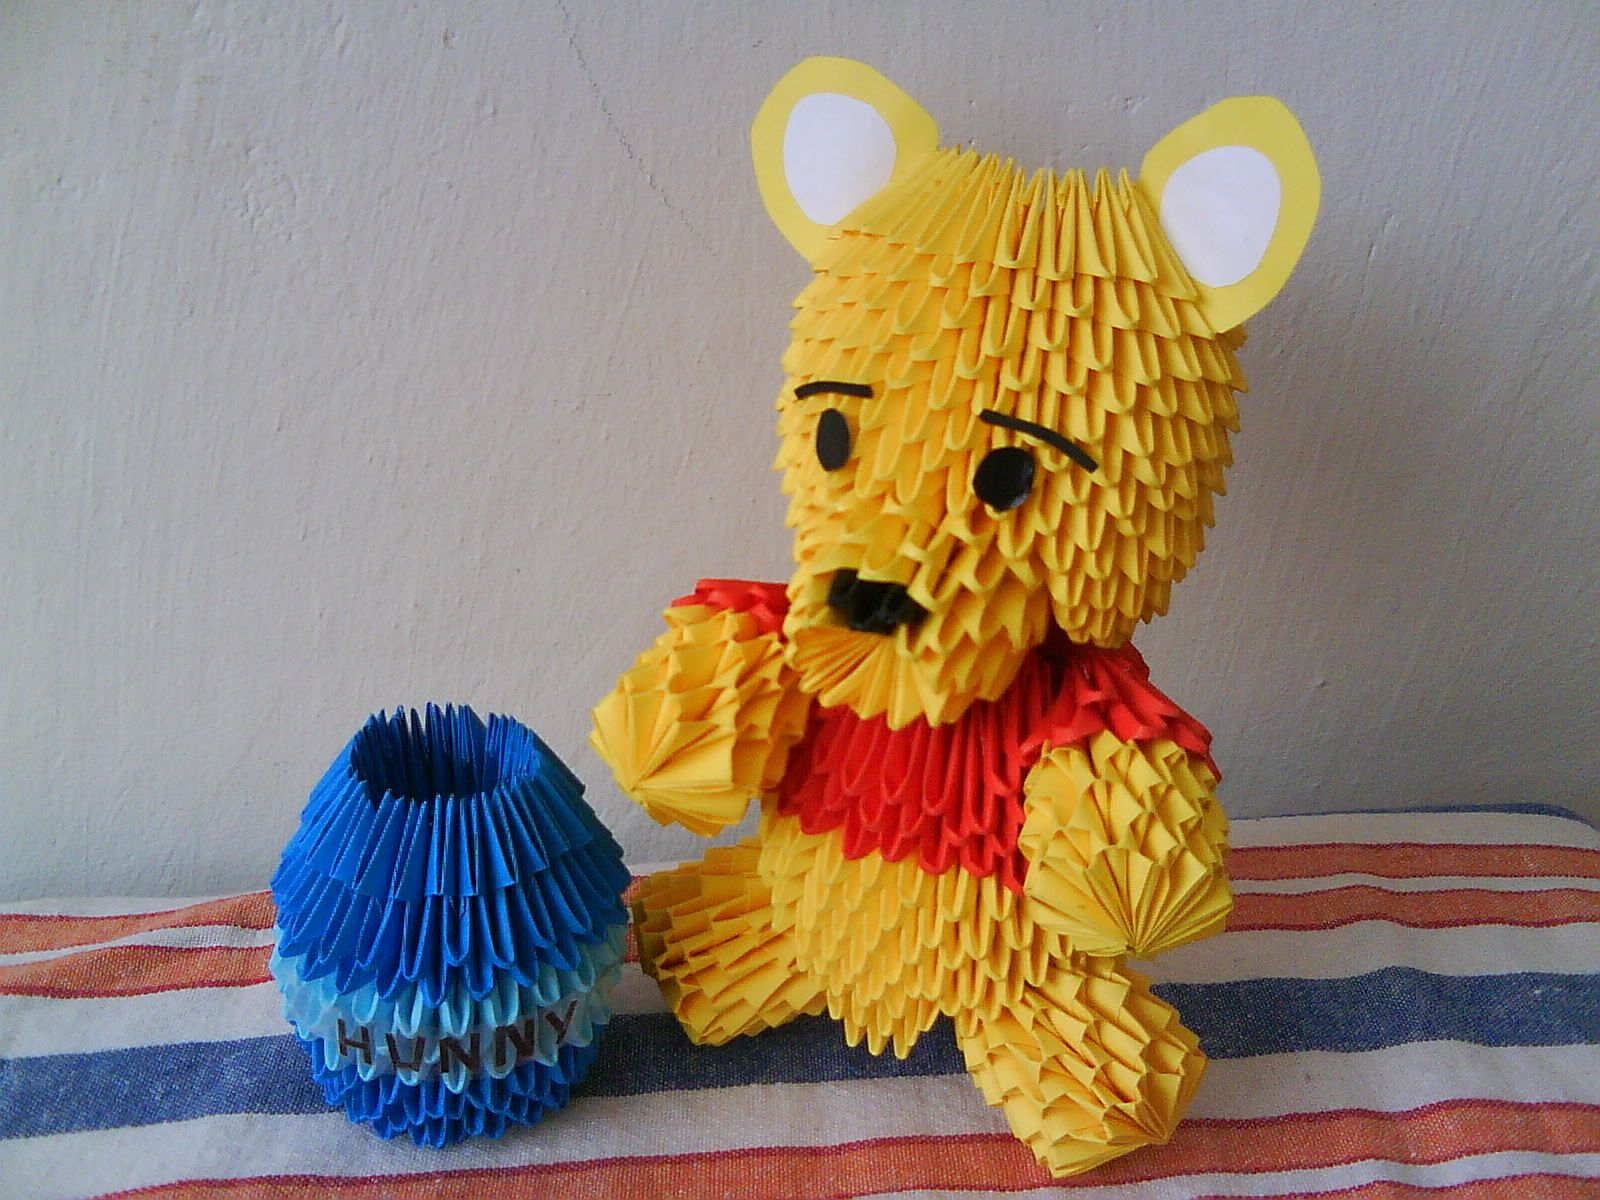 3dorigami winnie the pooh by integrall 3d origami 3d 3dorigami winnie the pooh by integrall 3d origami 3d origami art jeuxipadfo Images